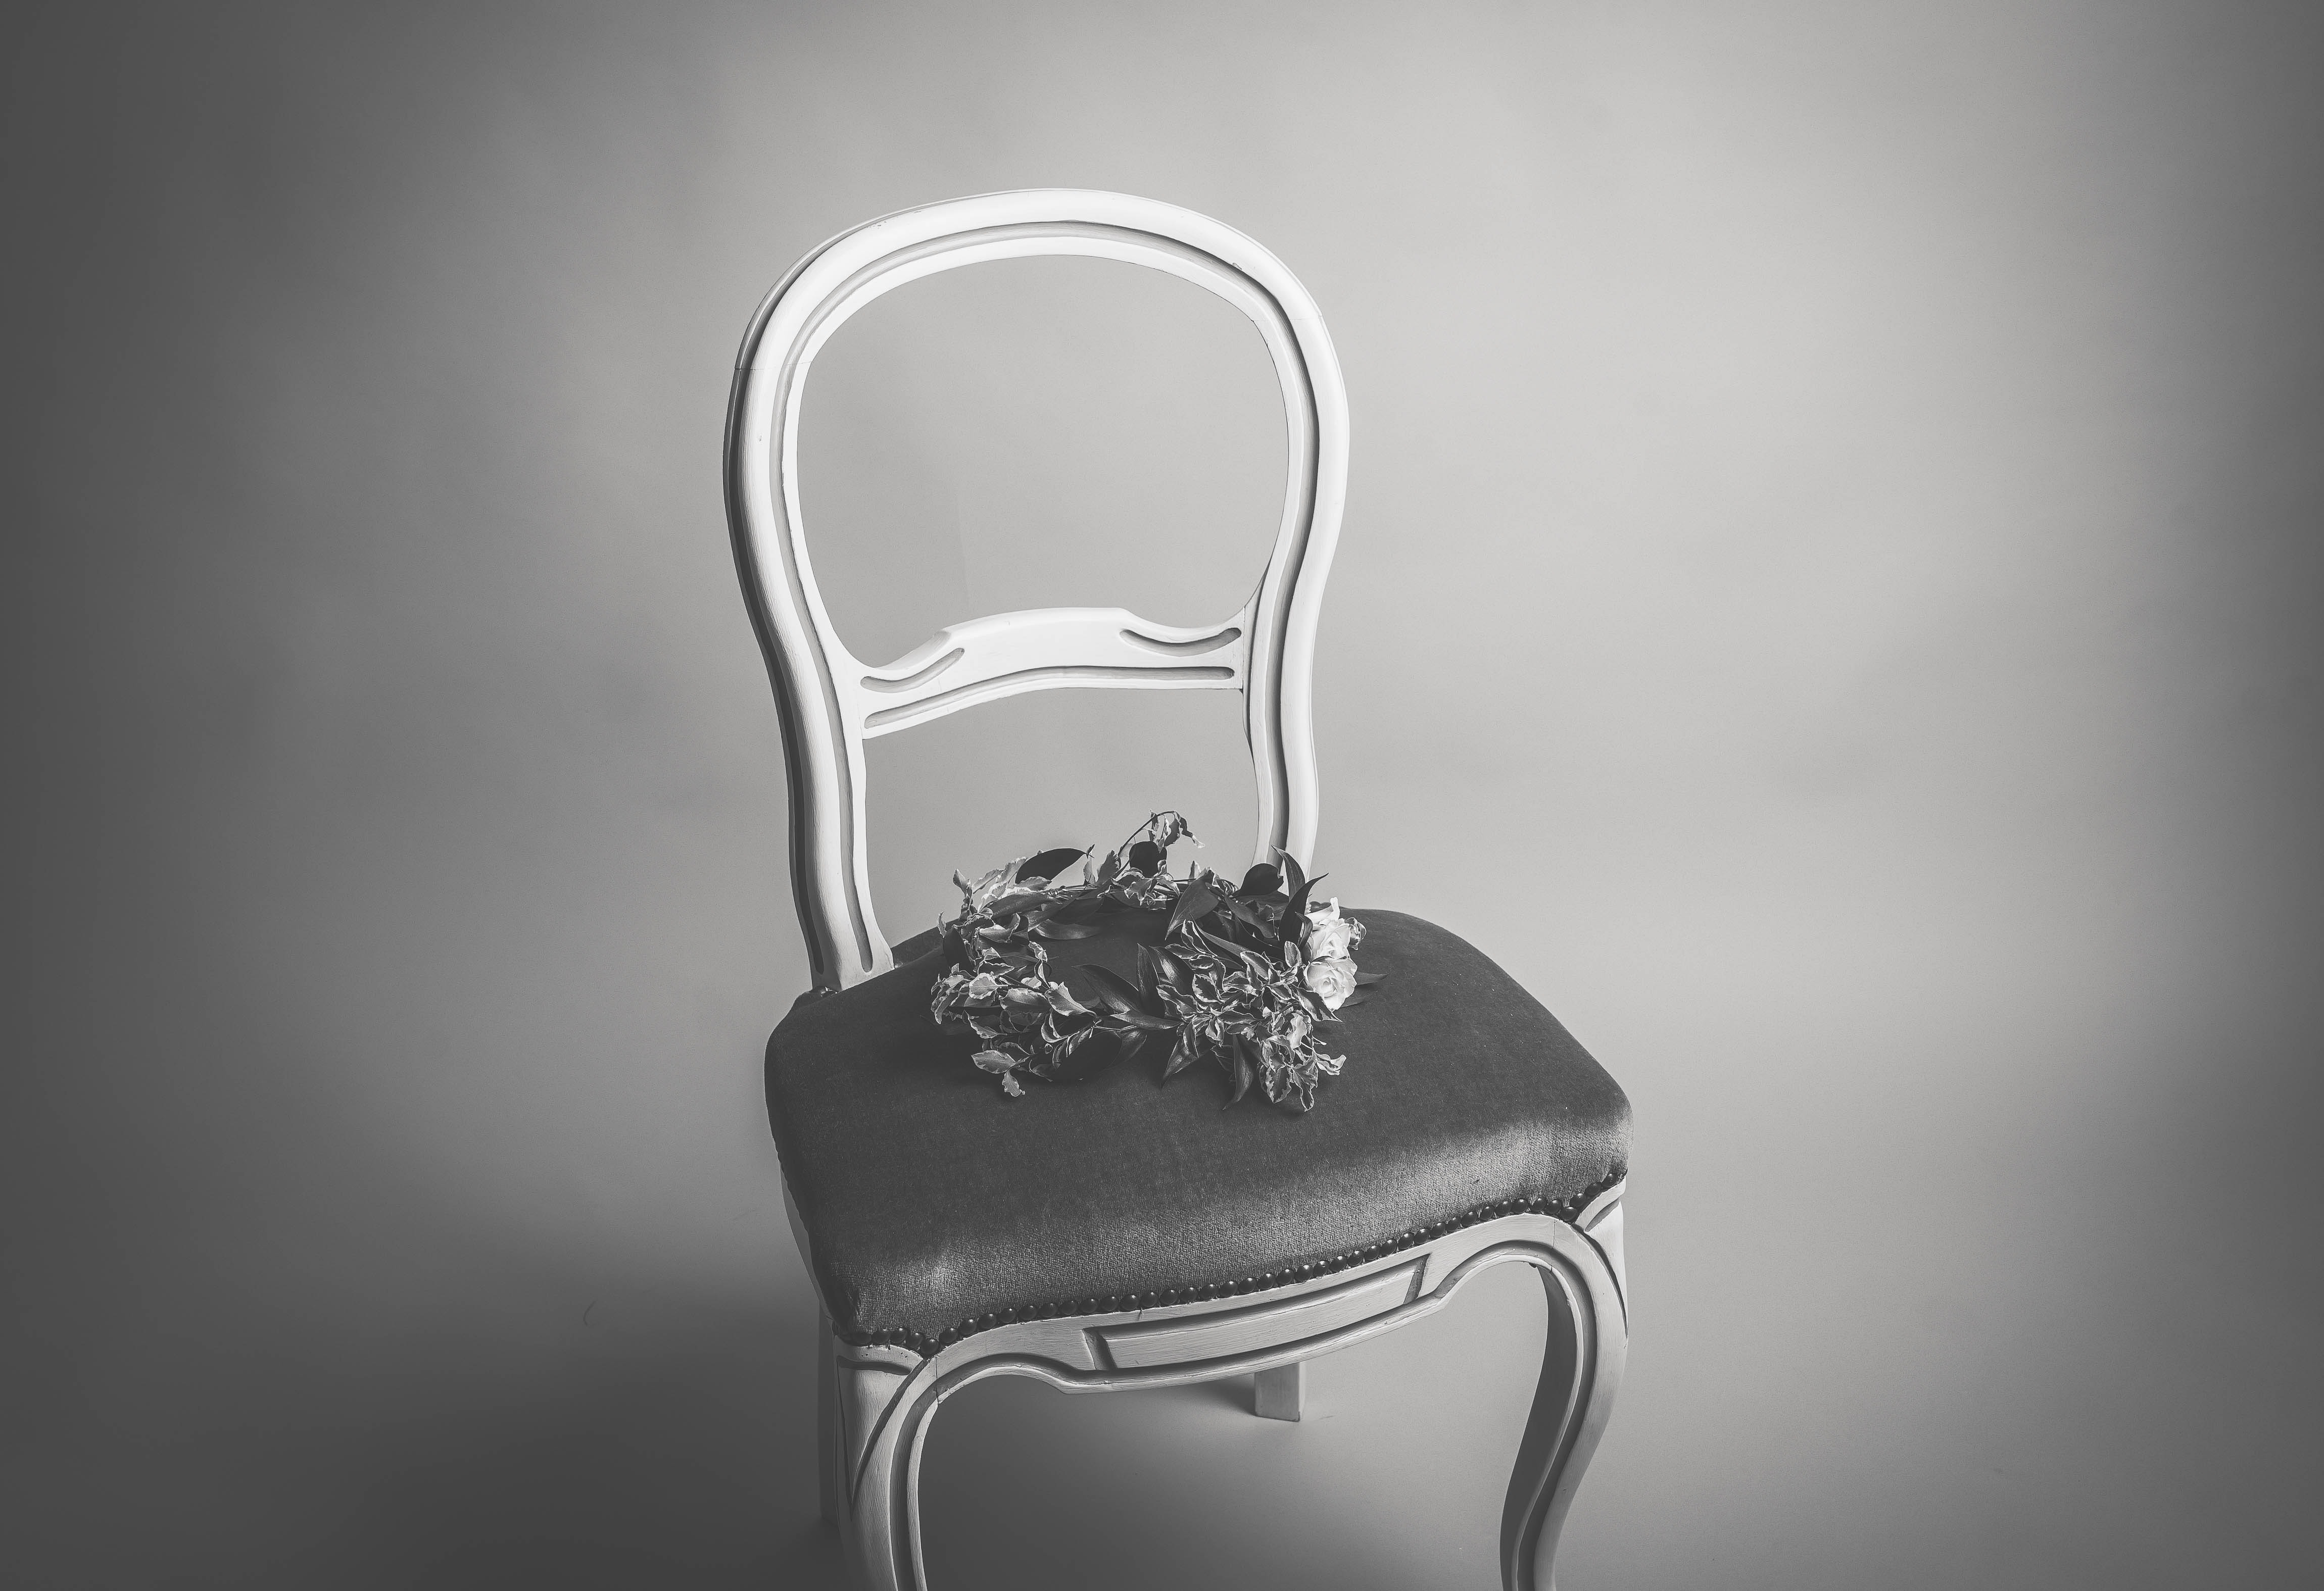 Black and white image of a vintage chair with a flower crown